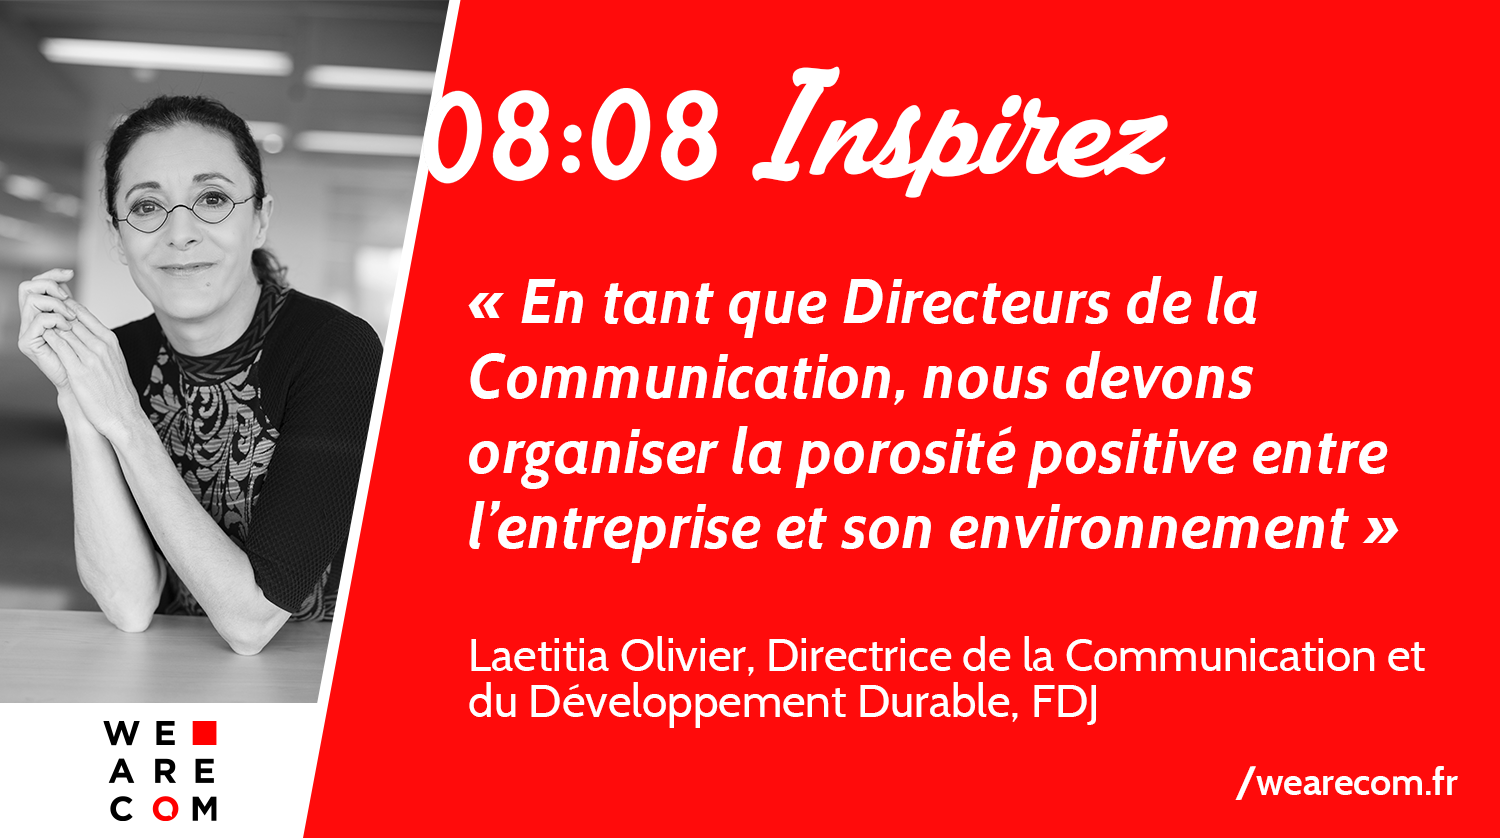 Laetitia-Olivier-FDJ-Directrice_Communication_citation_We-are-com